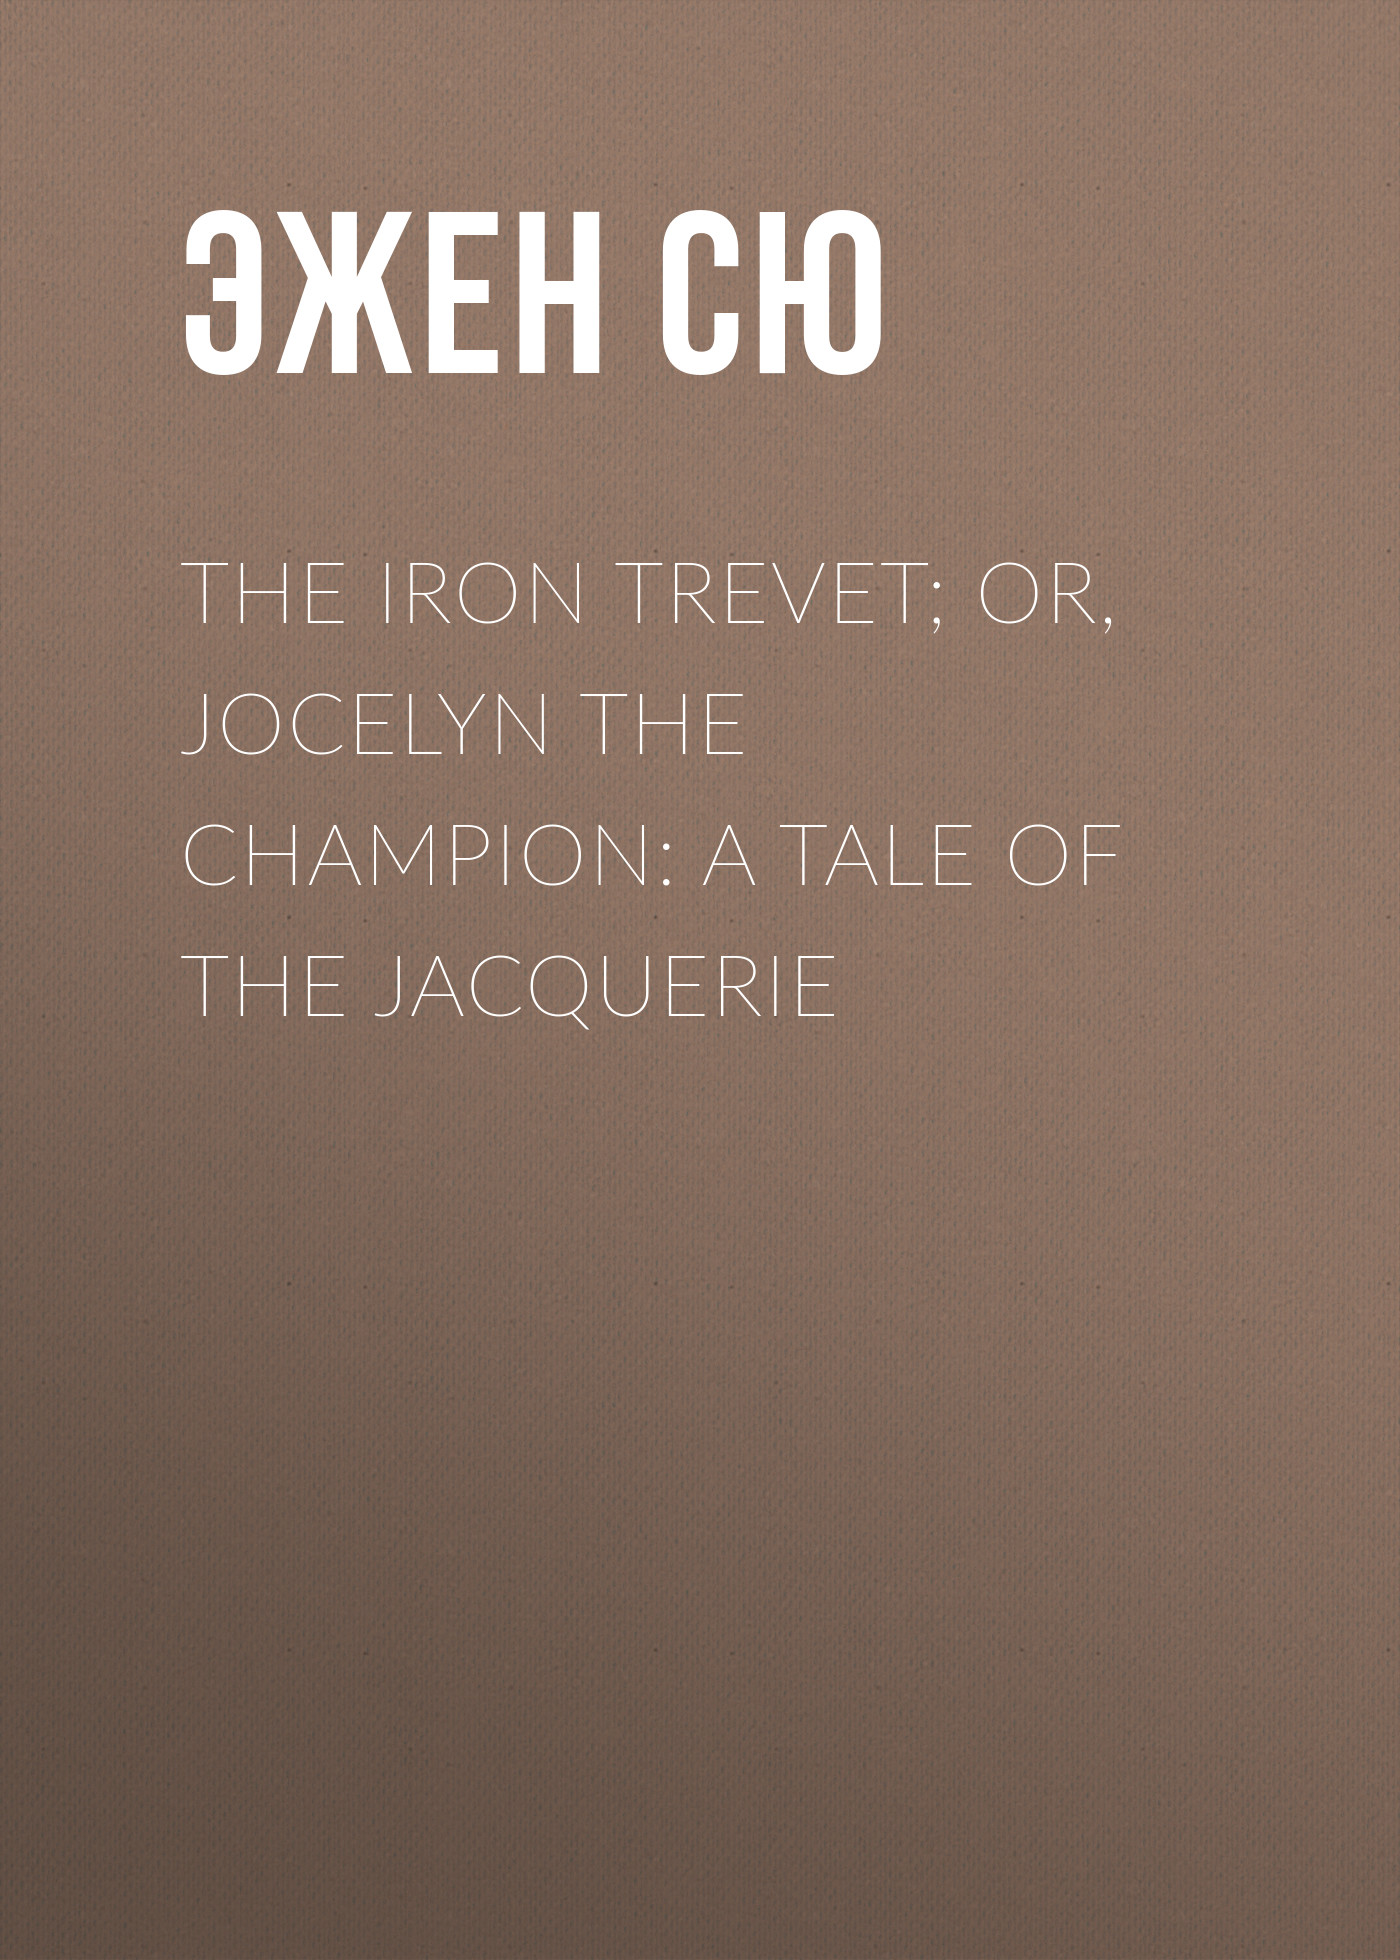 Эжен Сю The Iron Trevet; or, Jocelyn the Champion: A Tale of the Jacquerie эжен сю the gold sickle or hena the virgin of the isle of sen a tale of druid gaul